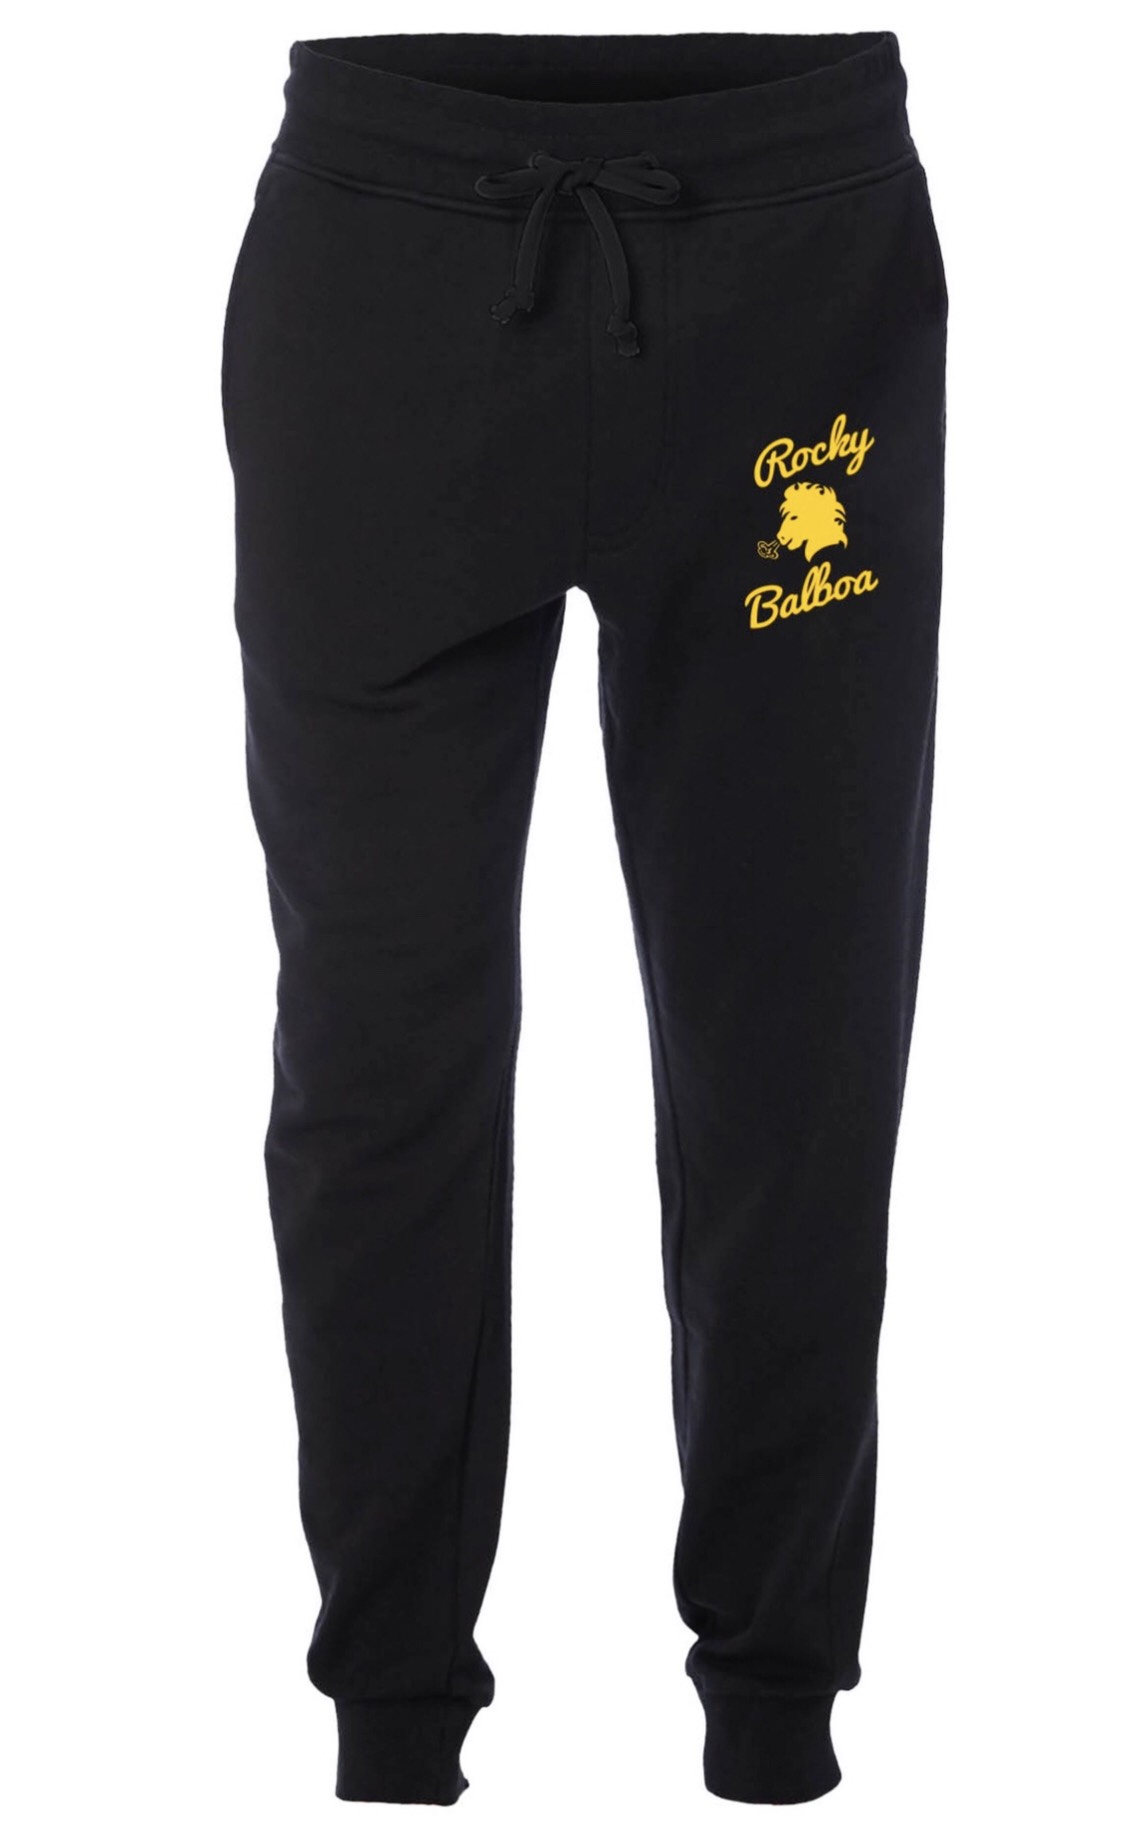 Rocky Balboa Stallion Jogger Sweatpants